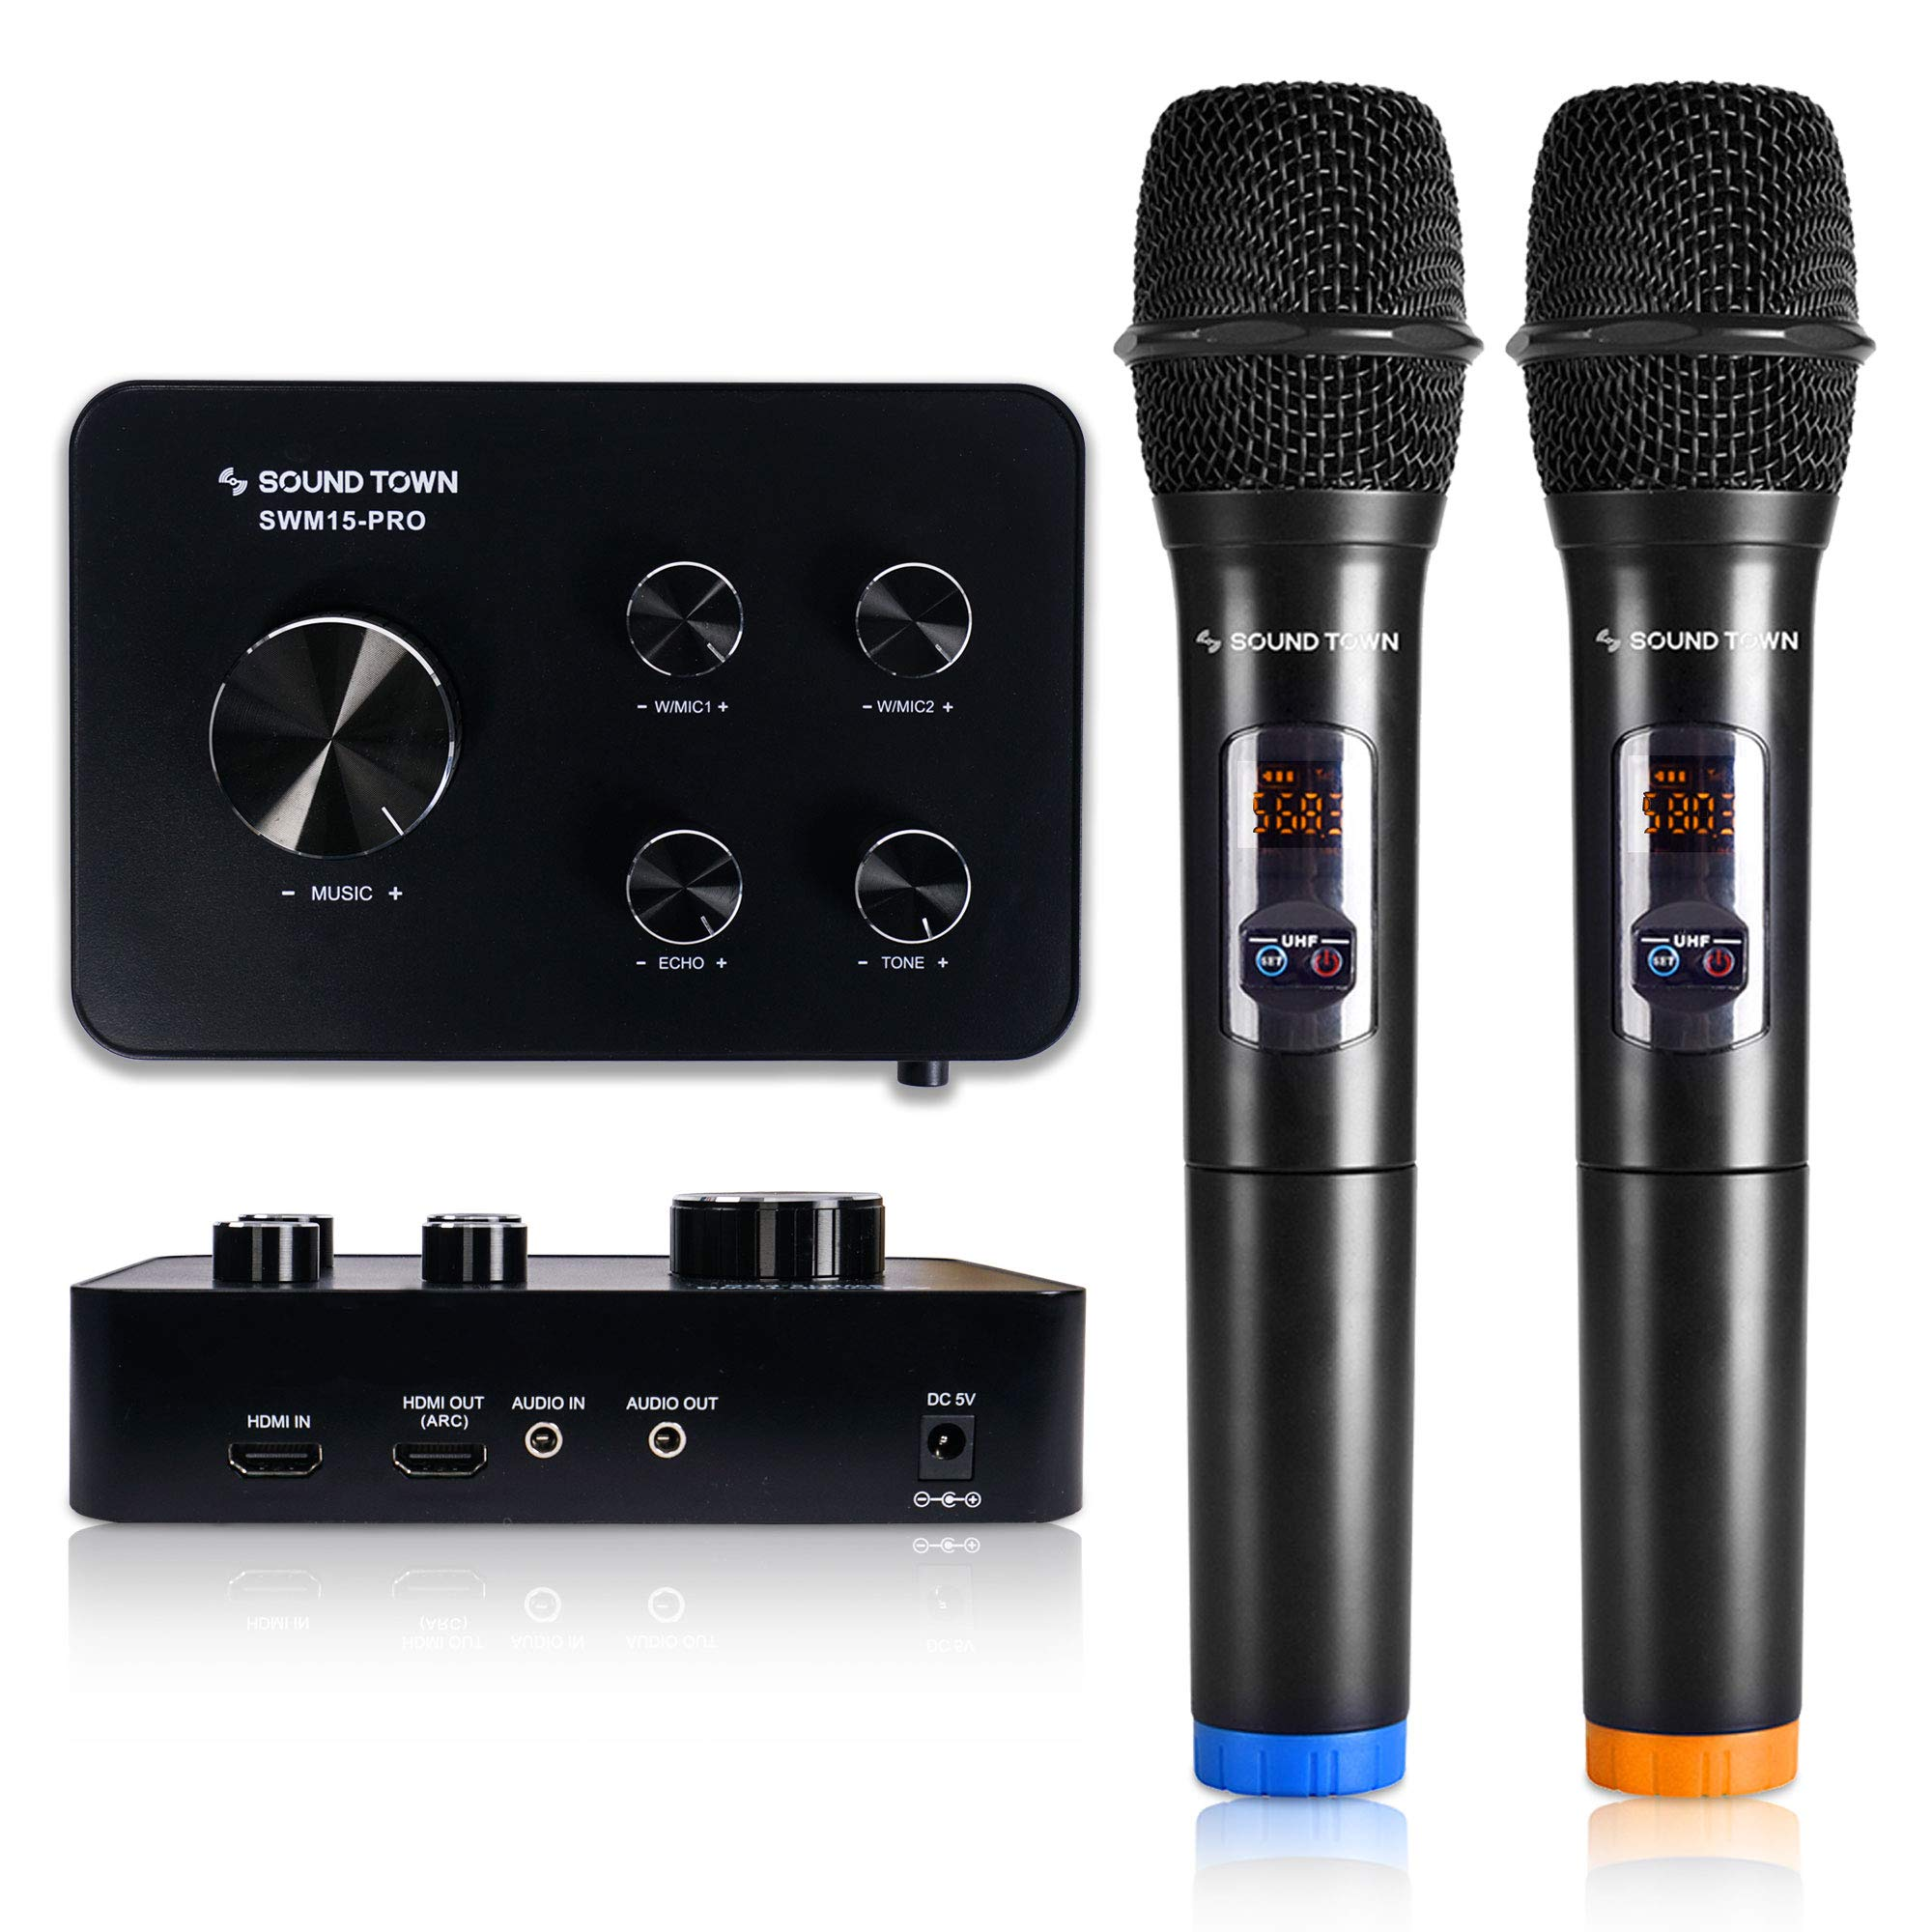 Sound Town 16 Channels Wireless Karaoke Microphone and Mixer System with Bluetooth, HDMI ARC, AUX, Supports Smart TV with HDMI Output (ARC), Media Box, PC, Home Theater (SWM15-PRO) - Upgrade Version by Sound Town